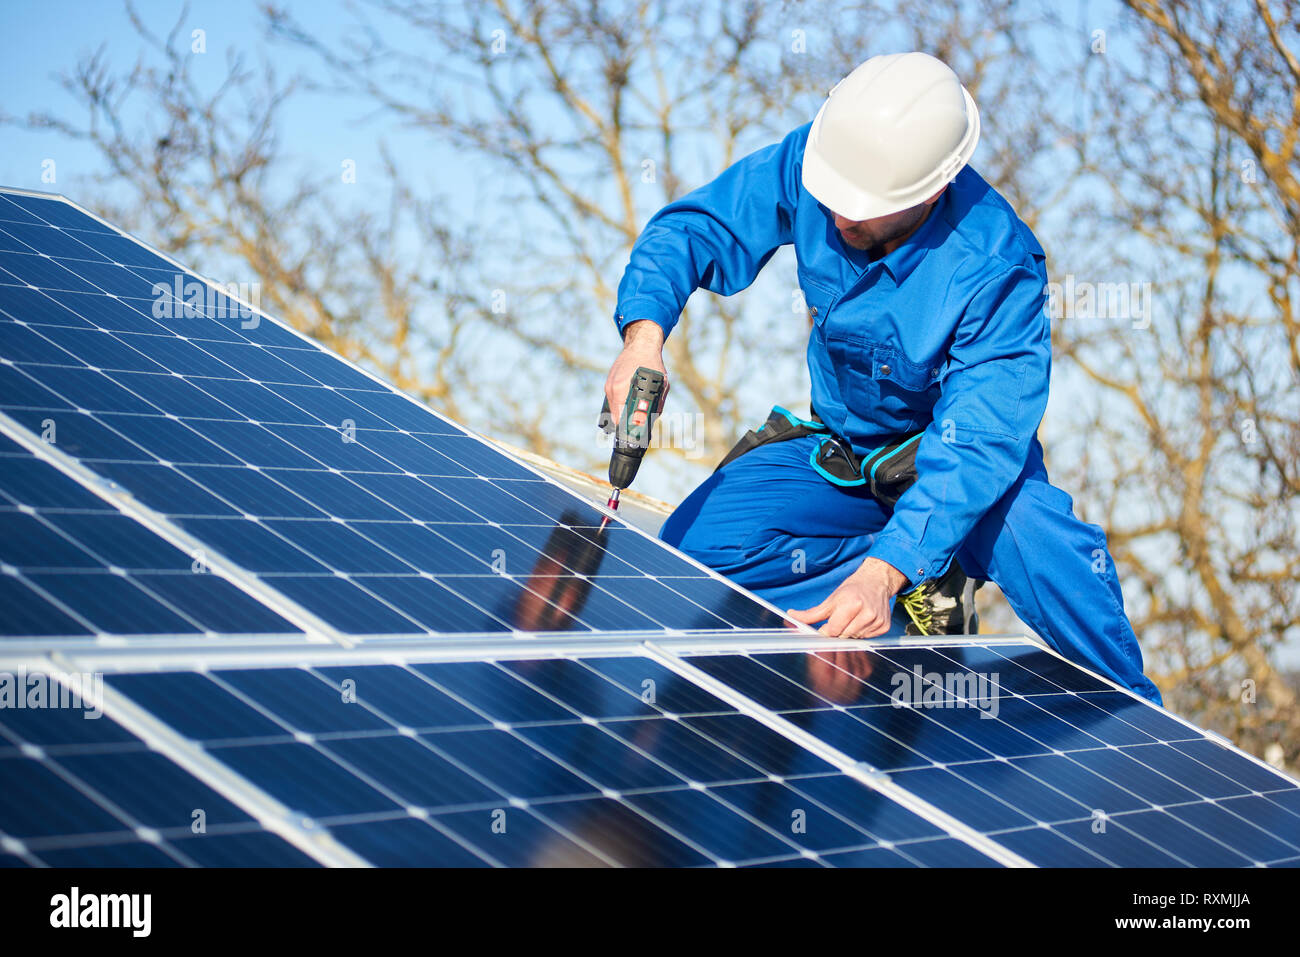 Male engineer in blue suit and protective helmet installing photovoltaic panel system using screwdriver. Professional electrician mounting solar modul - Stock Image